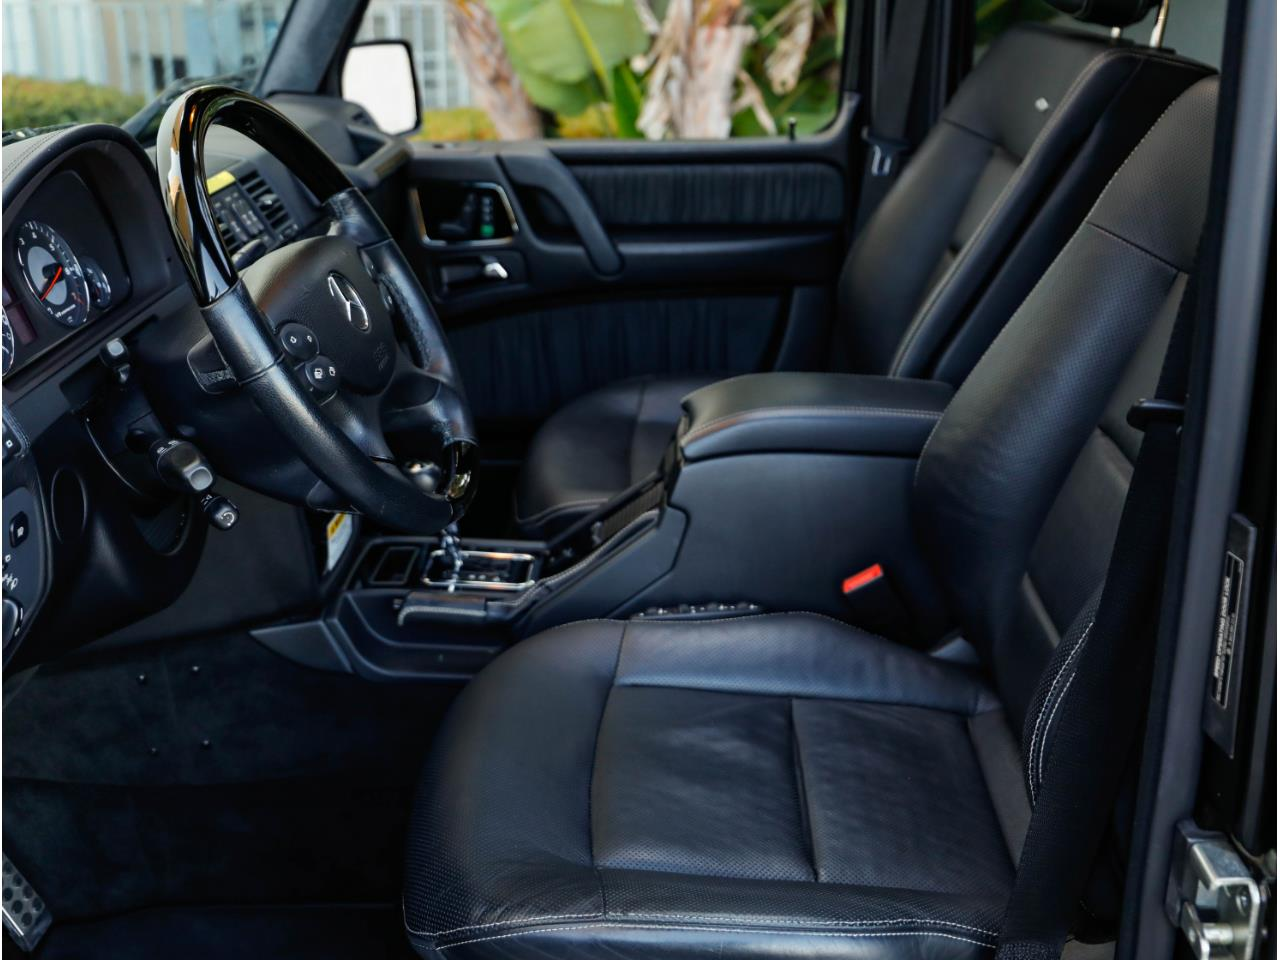 2011 Mercedes-Benz G550 for sale in Marina Del Rey, CA – photo 24